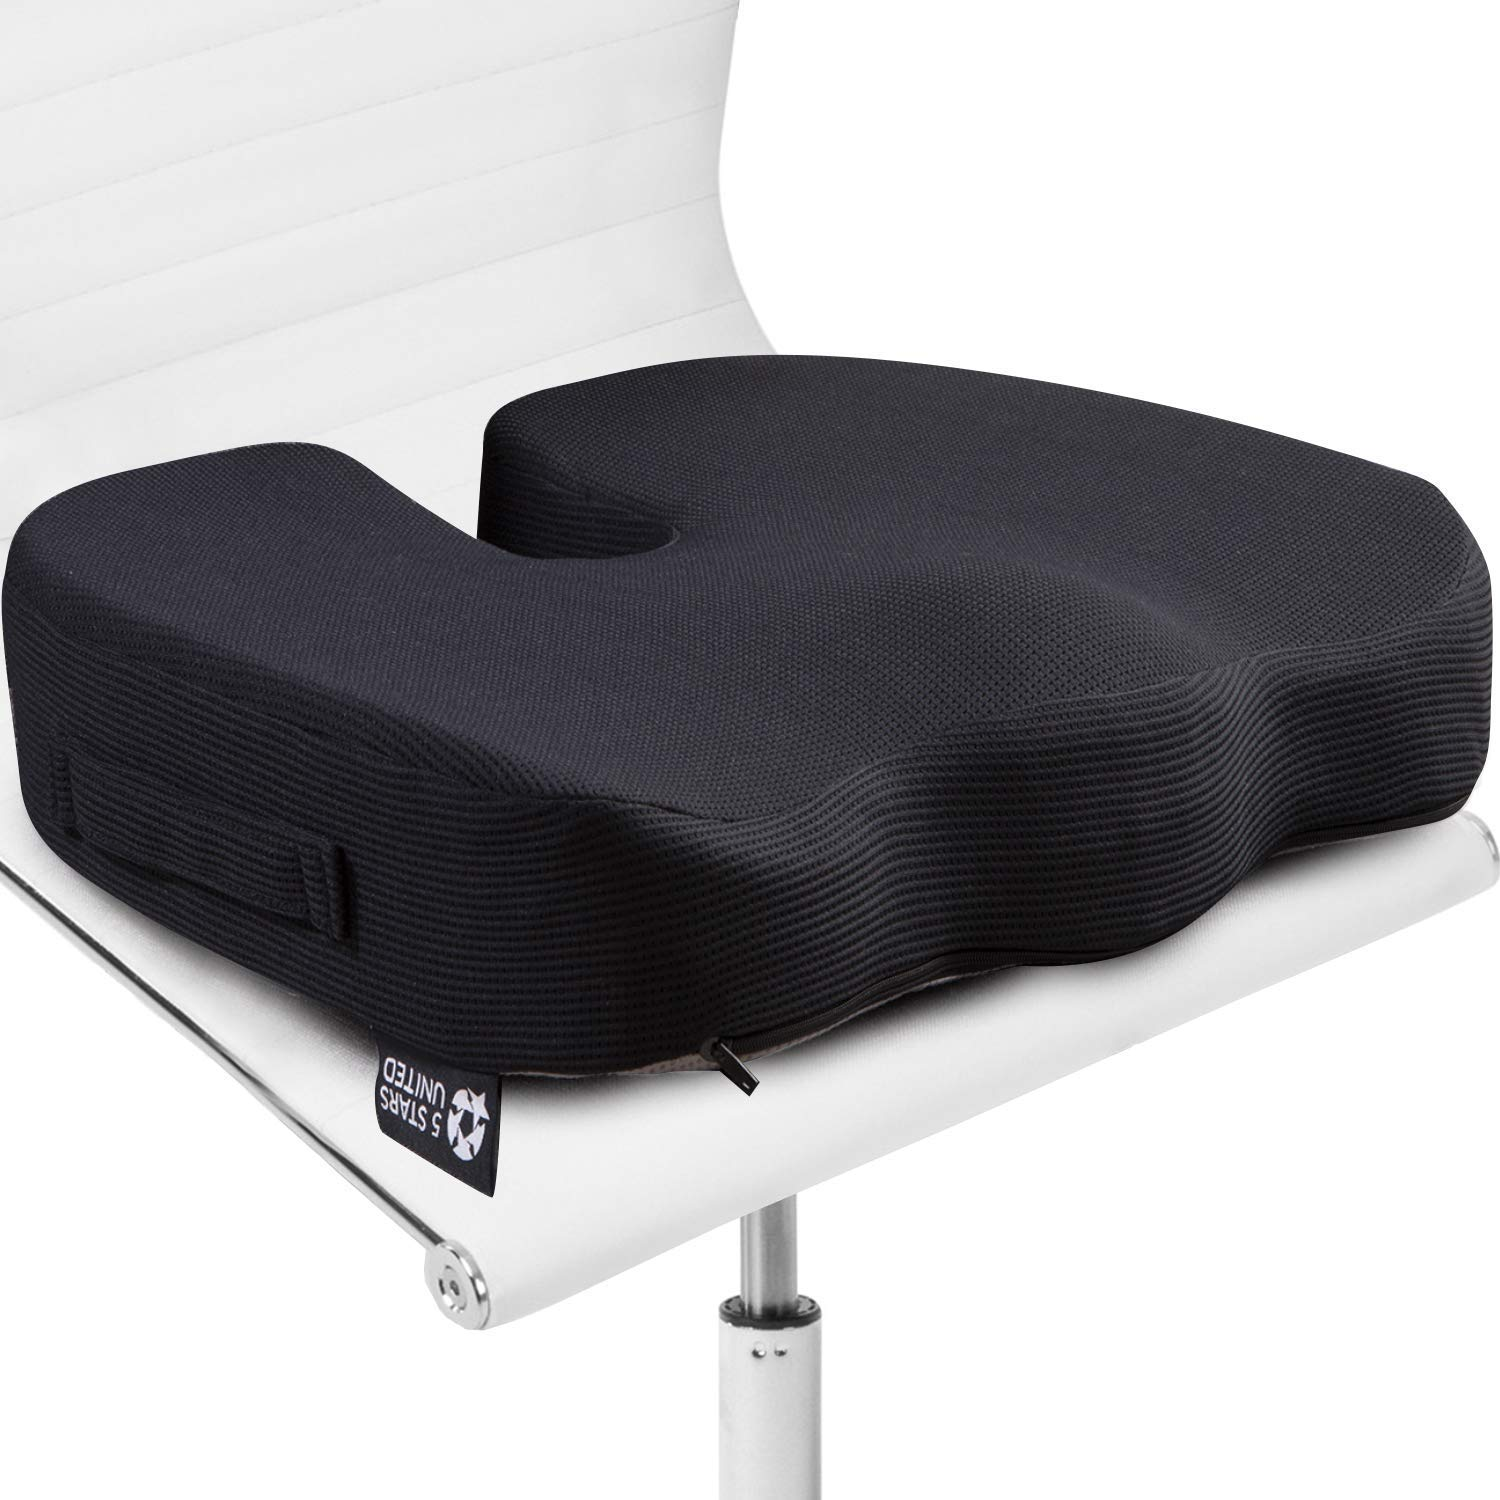 Seat Cushion Pillow For Office Chair 100 Memory Foam Firm Coccyx Pad Tailbone Sciatica Lower Back Pain Relief Posture Corrector For Car